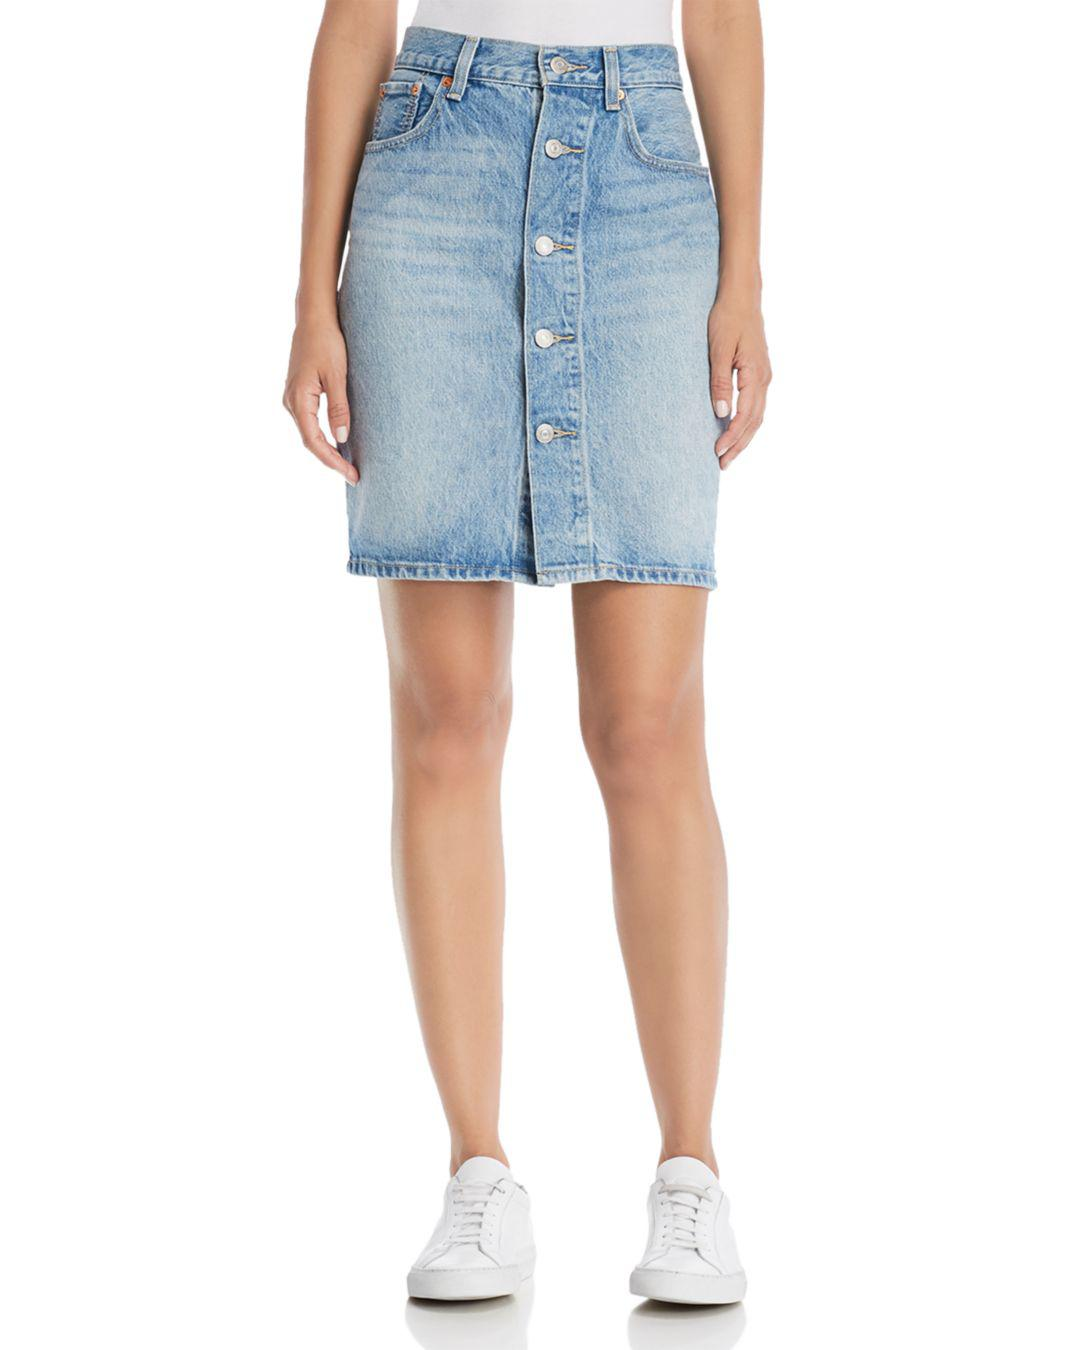 cbccf014f Levi's Mom Denim Skirt In Desperate Measures in Blue - Lyst